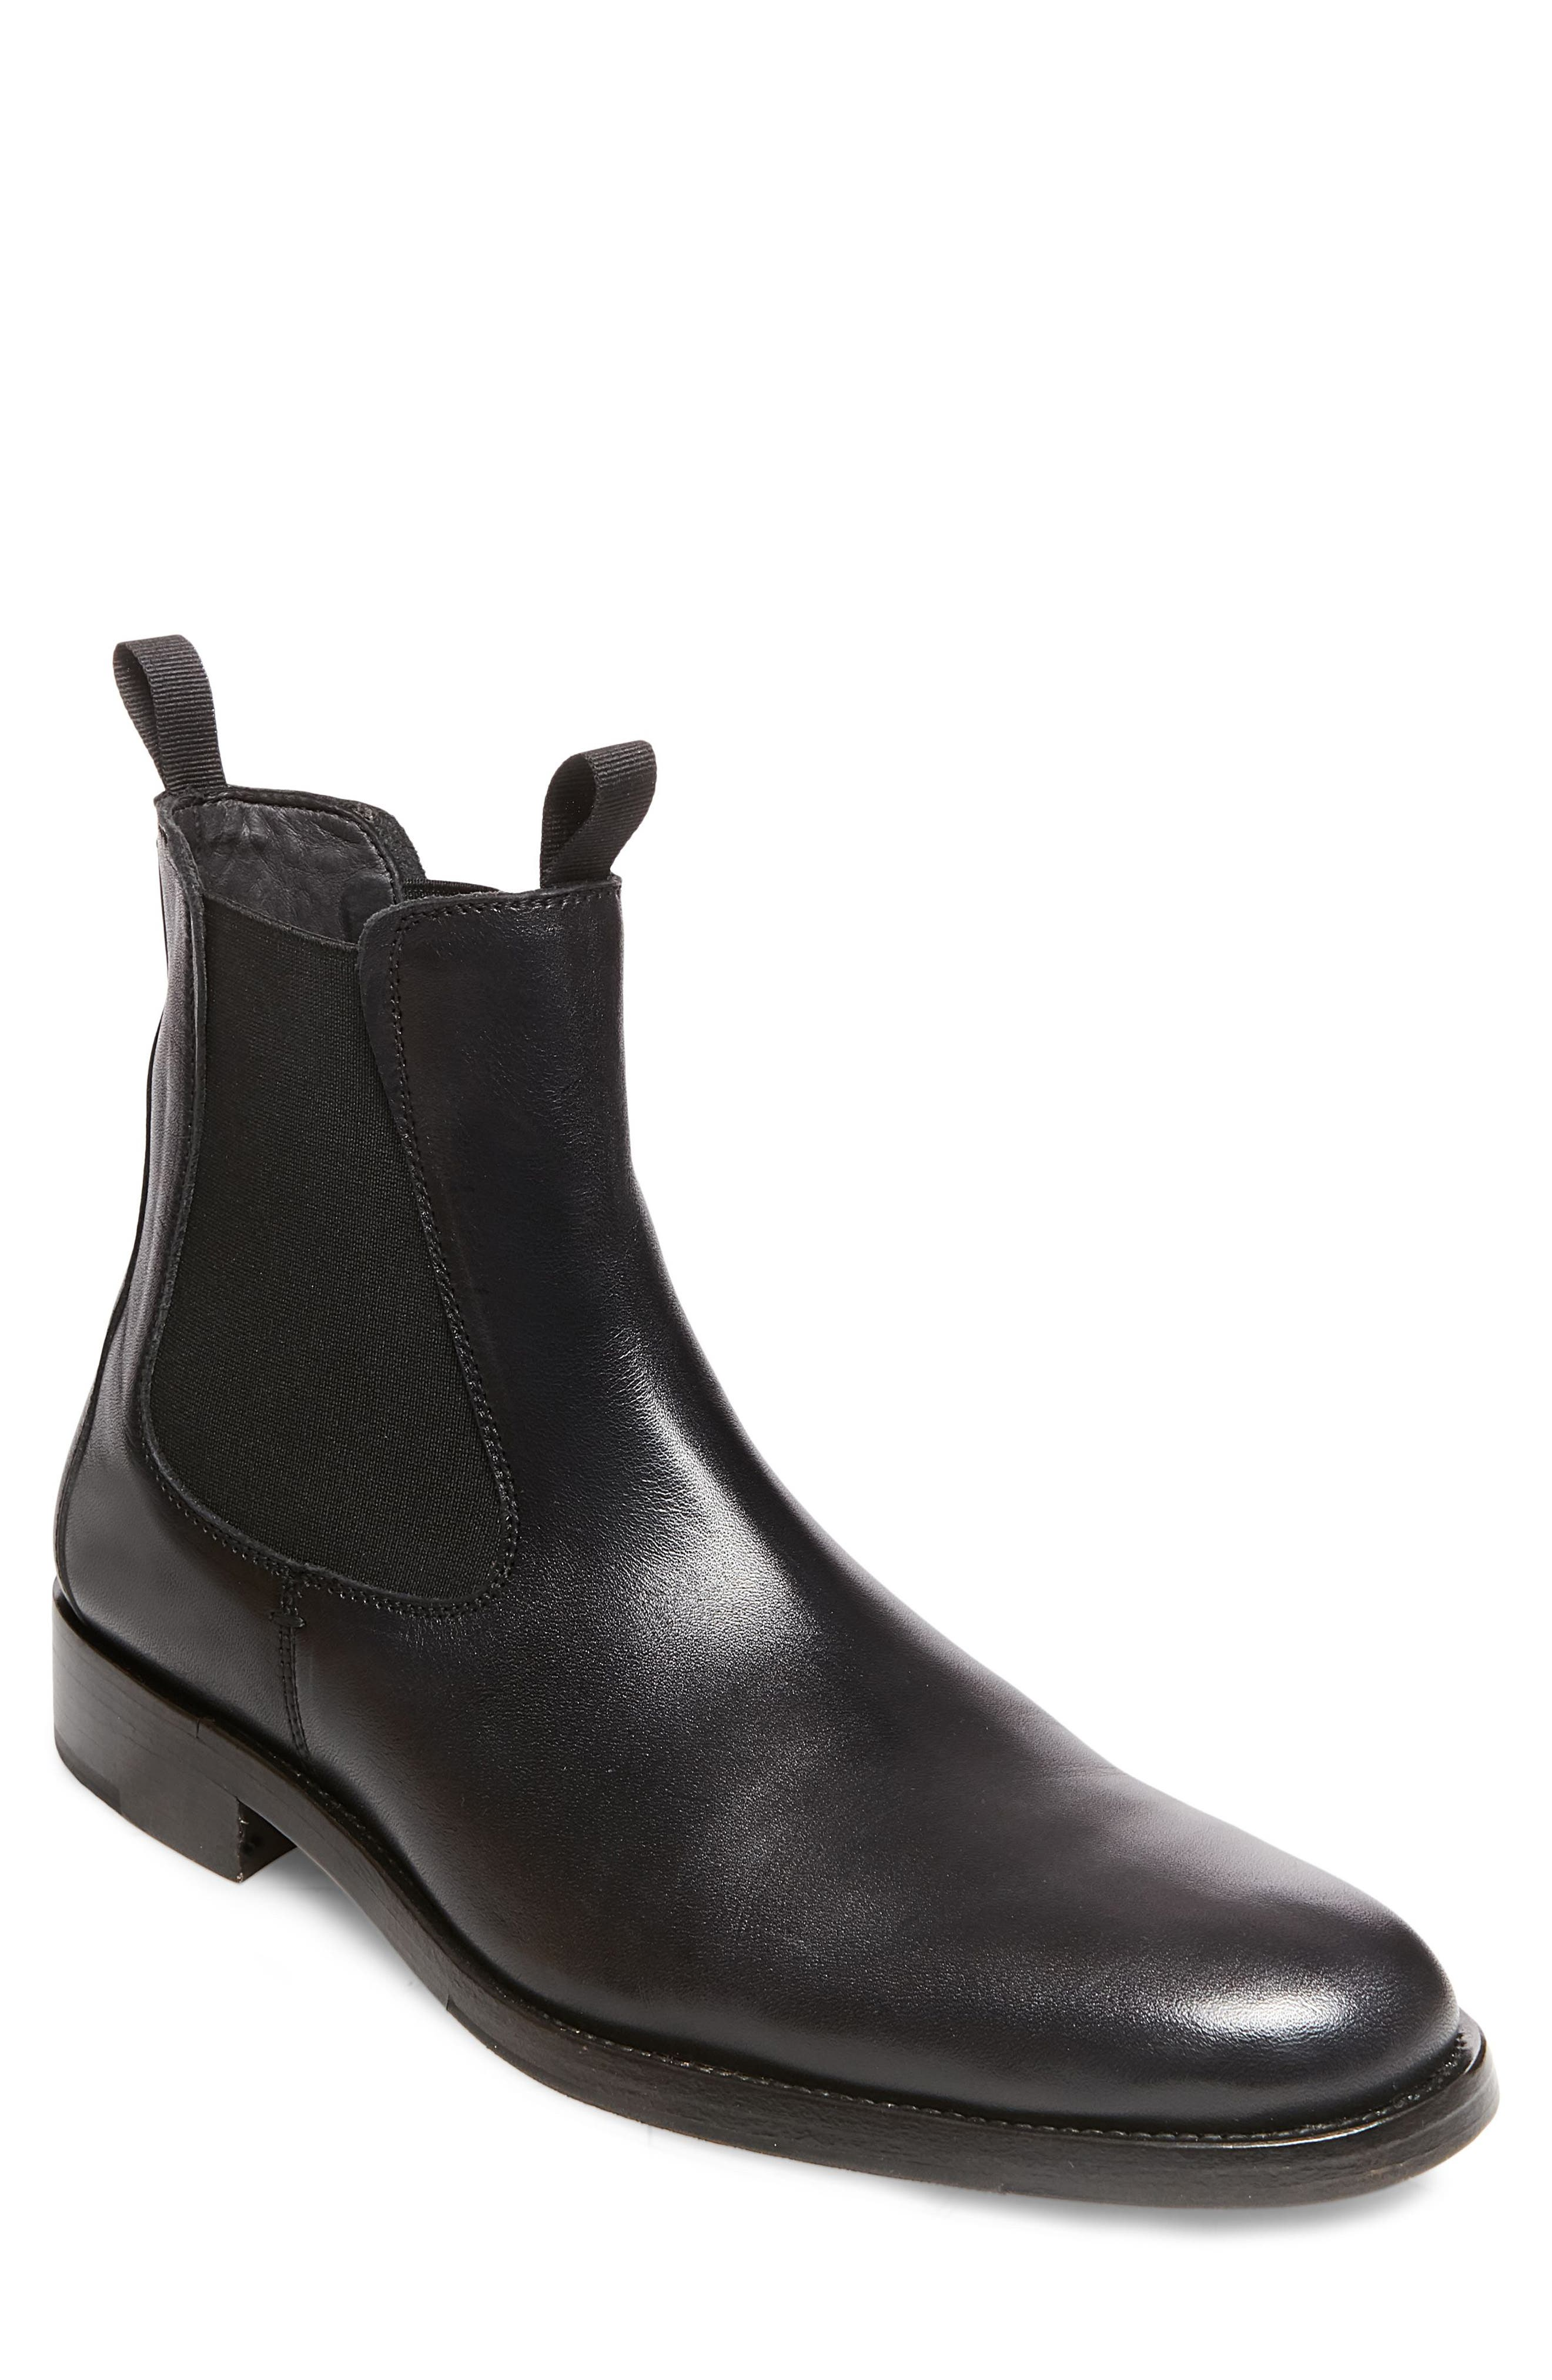 x GQ Nick Chelsea Boot,                             Main thumbnail 1, color,                             Black Leather